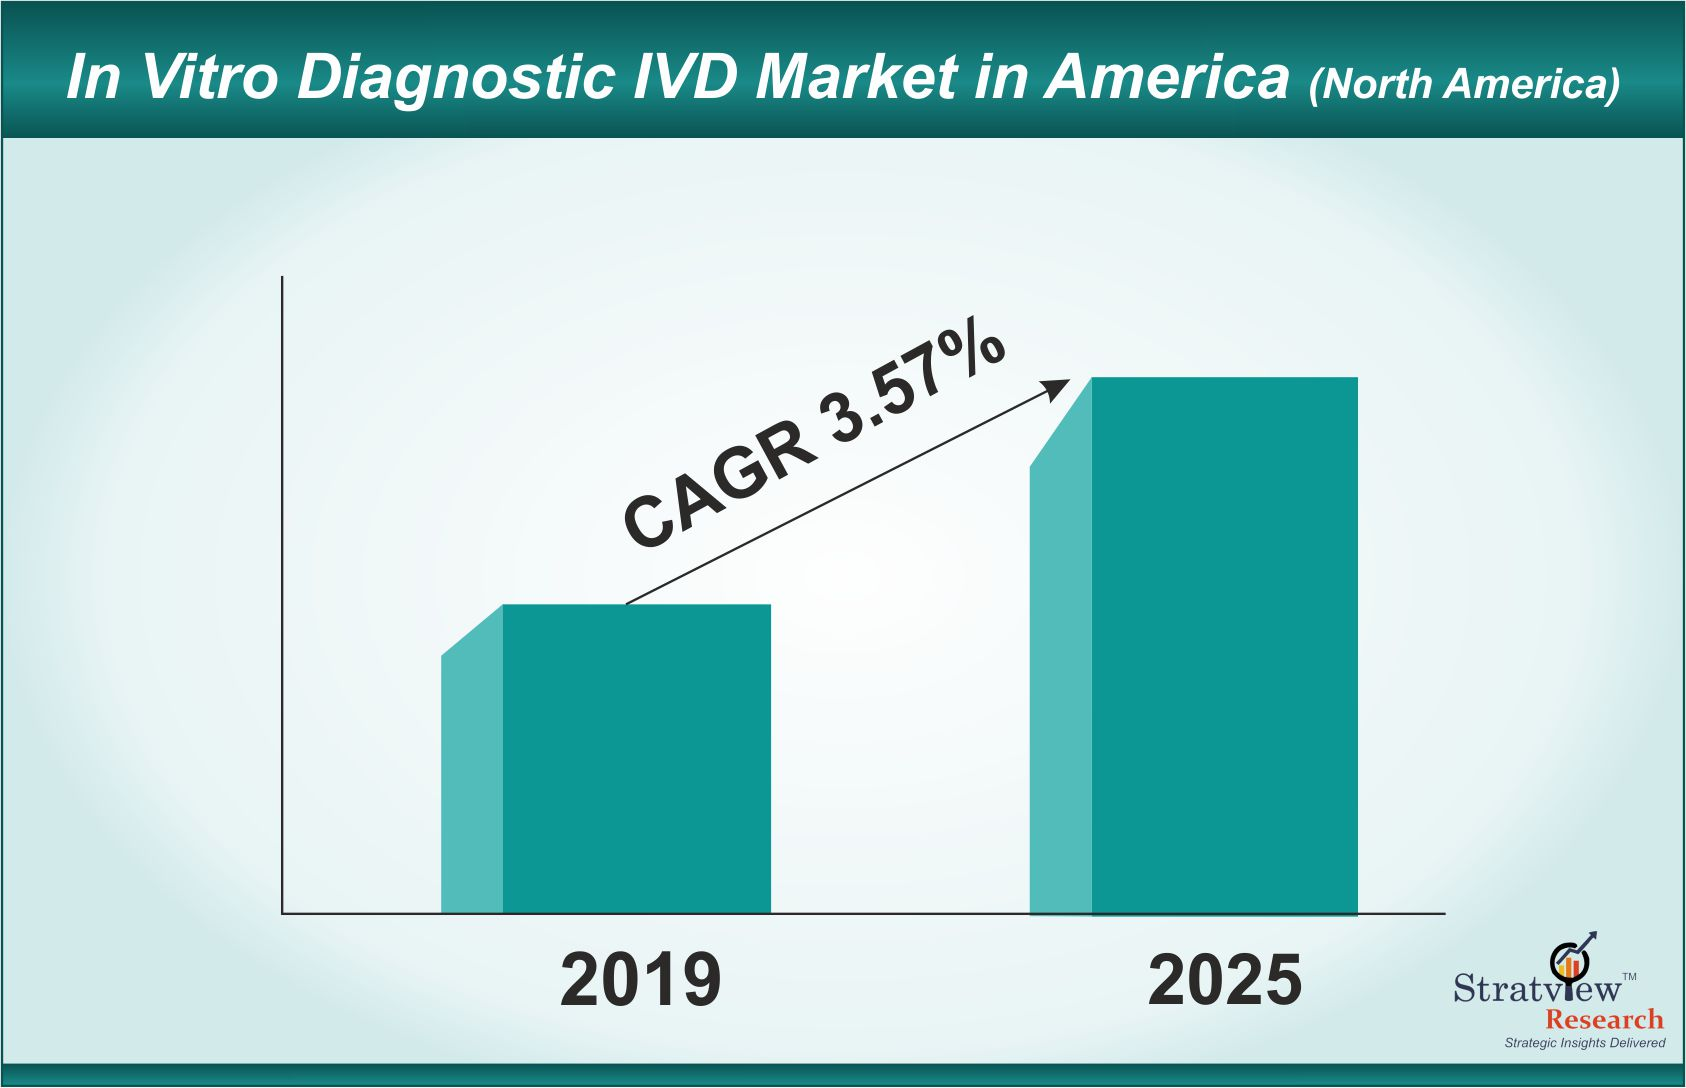 In Vitro Diagnostic IVD Market in America to Grow Even Better By 2019-2025